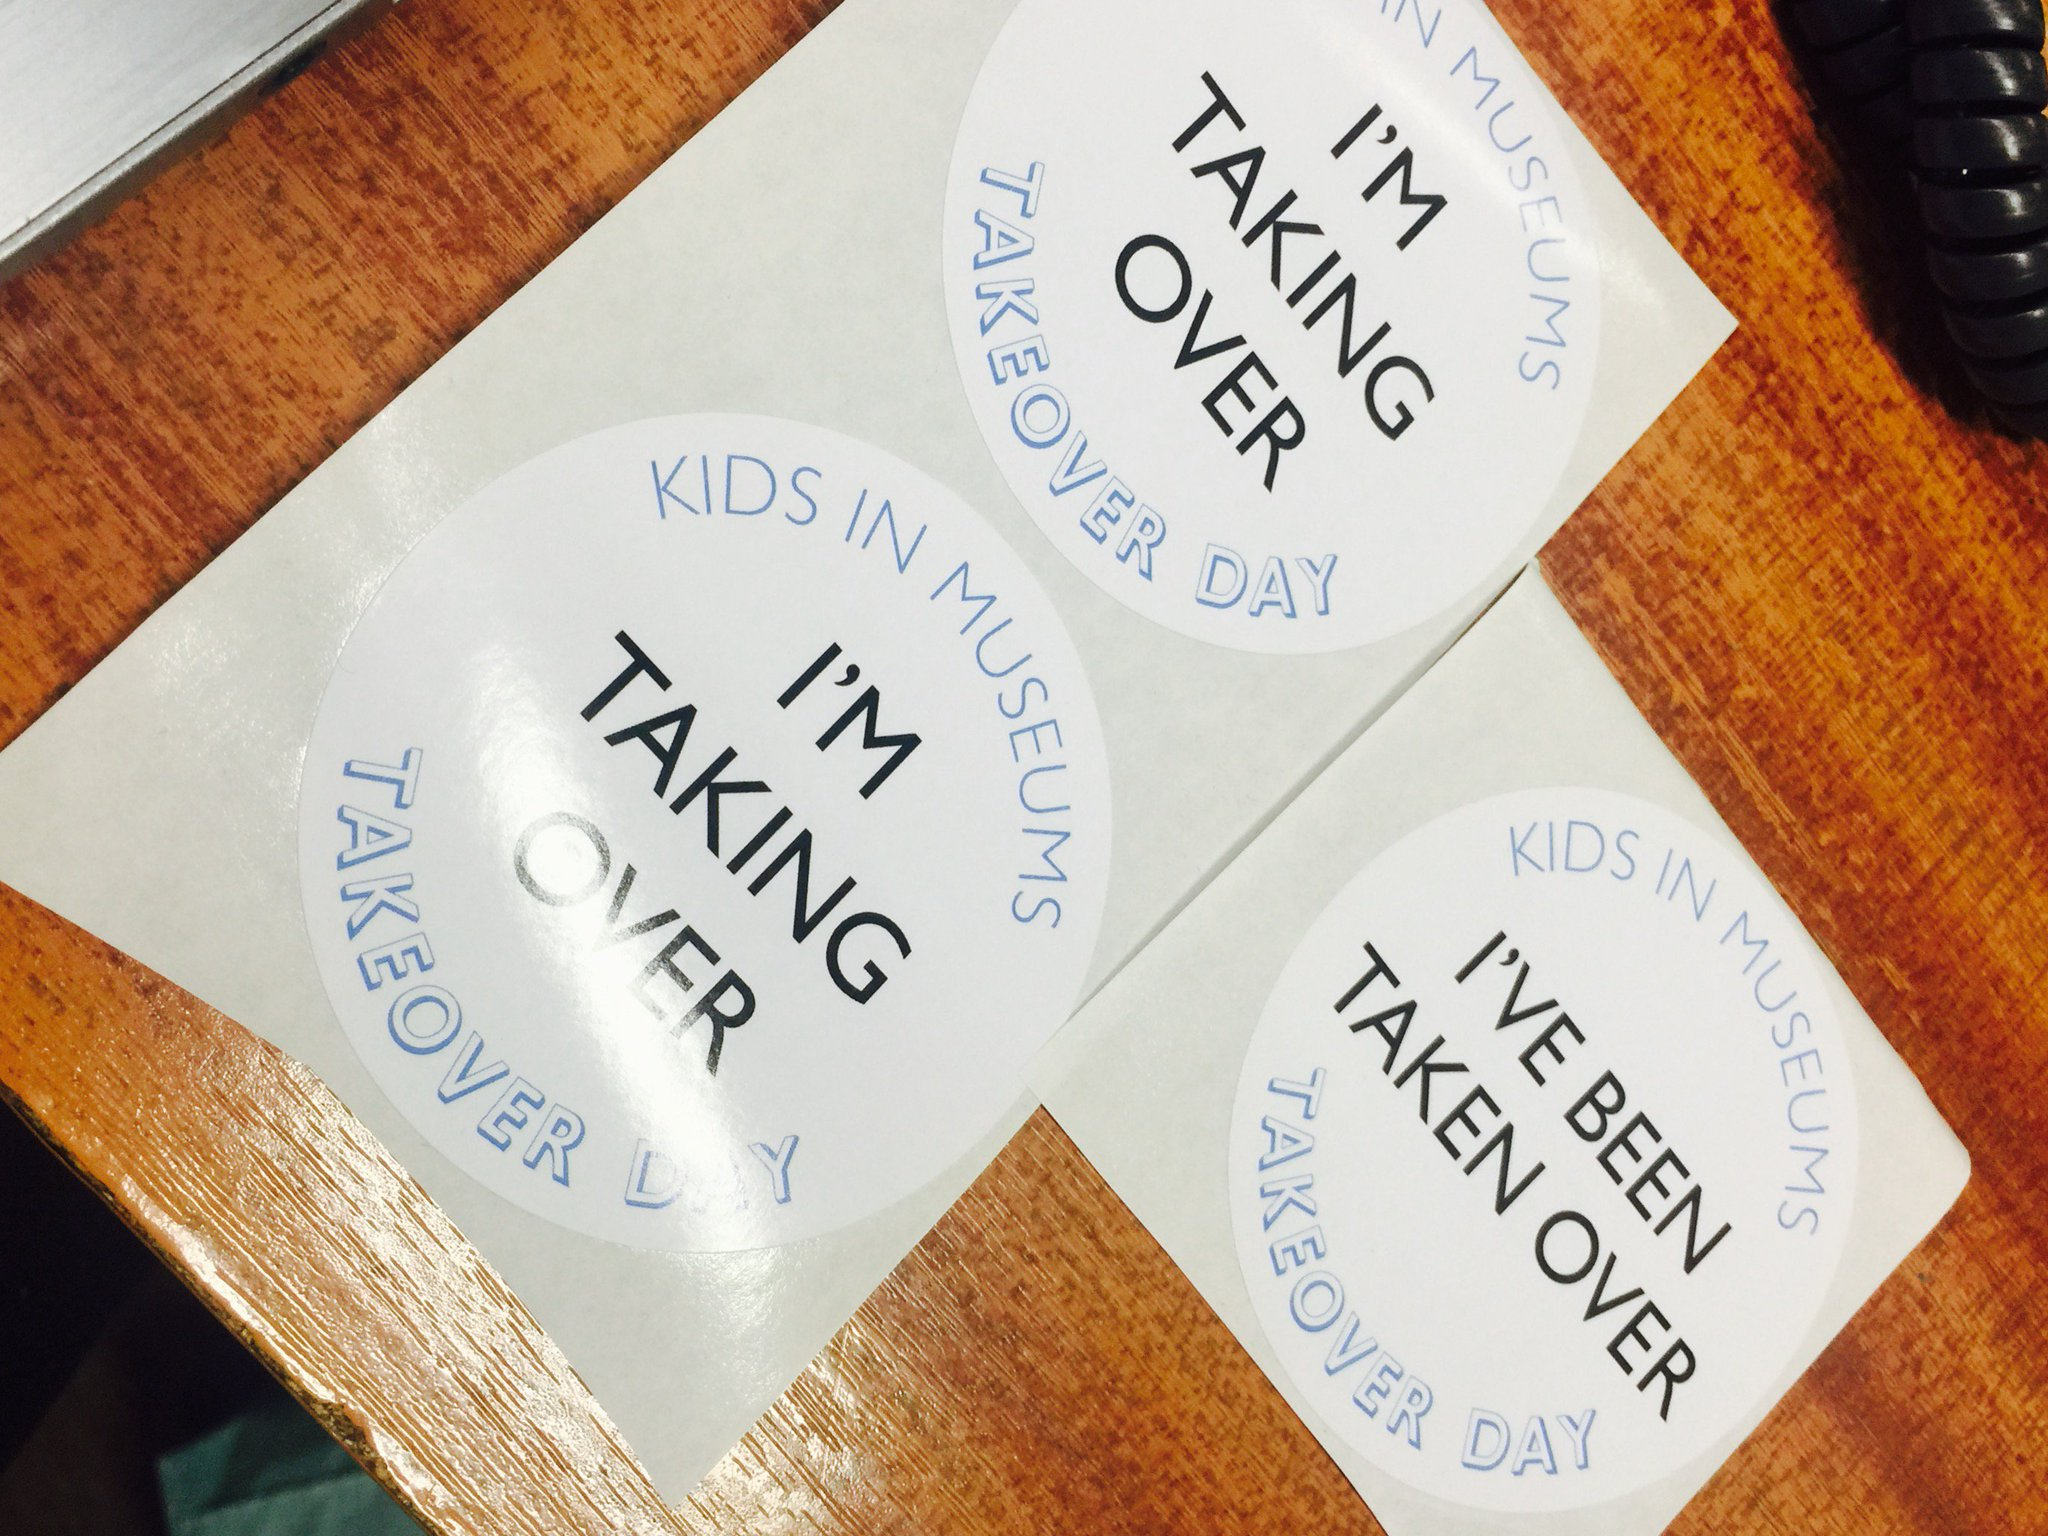 Tomorrow is #TakeoverDay and we've got the badges ready and waiting for our #teens. @kidsinmuseums https://t.co/HCkN72uywb